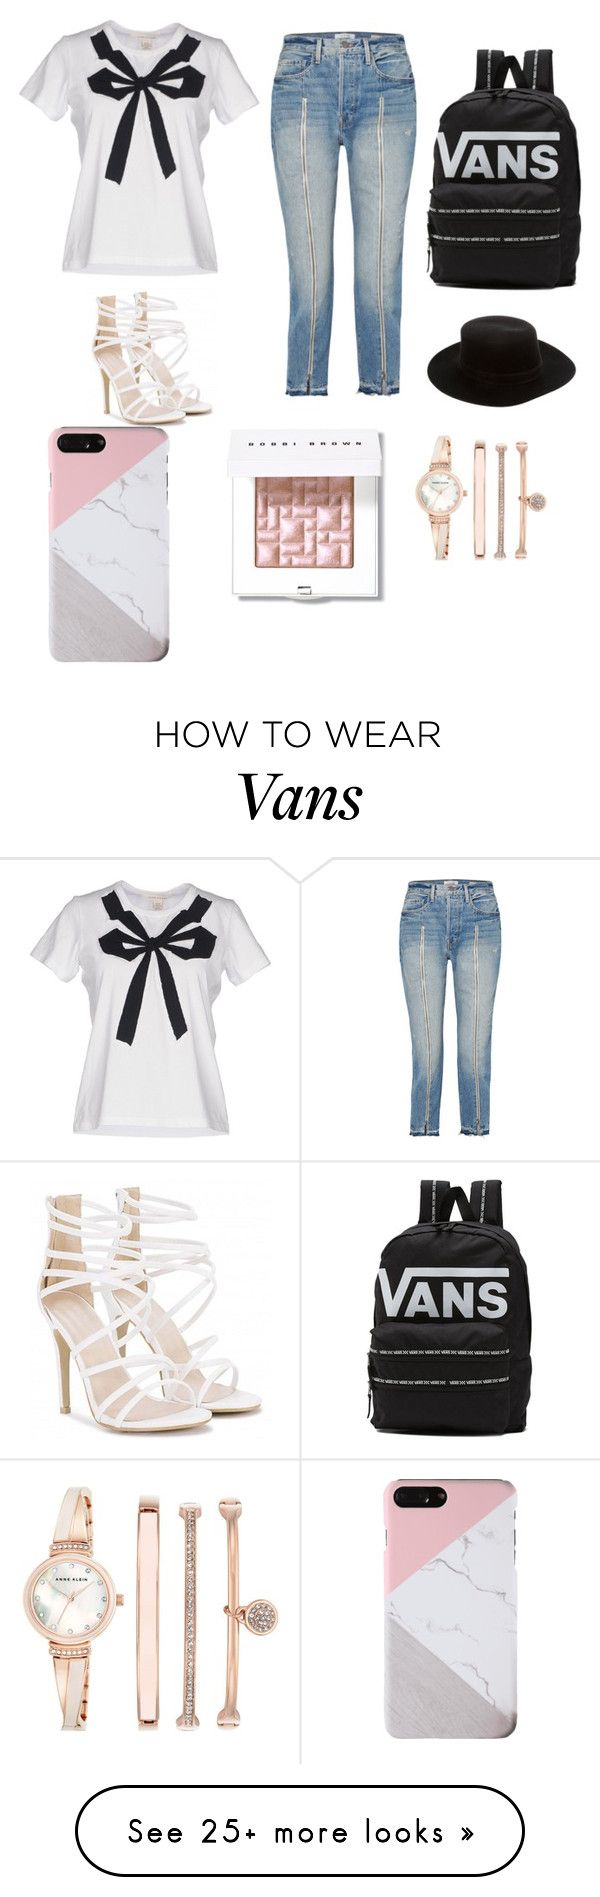 """""""Showing The Best! First Design!❤"""" by sabinacarpenter on Polyvore featuring Marc by Marc Jacobs, Frame, Vans, Janessa Leone, Bobbi Brown Cosmetics and Anne Klein"""